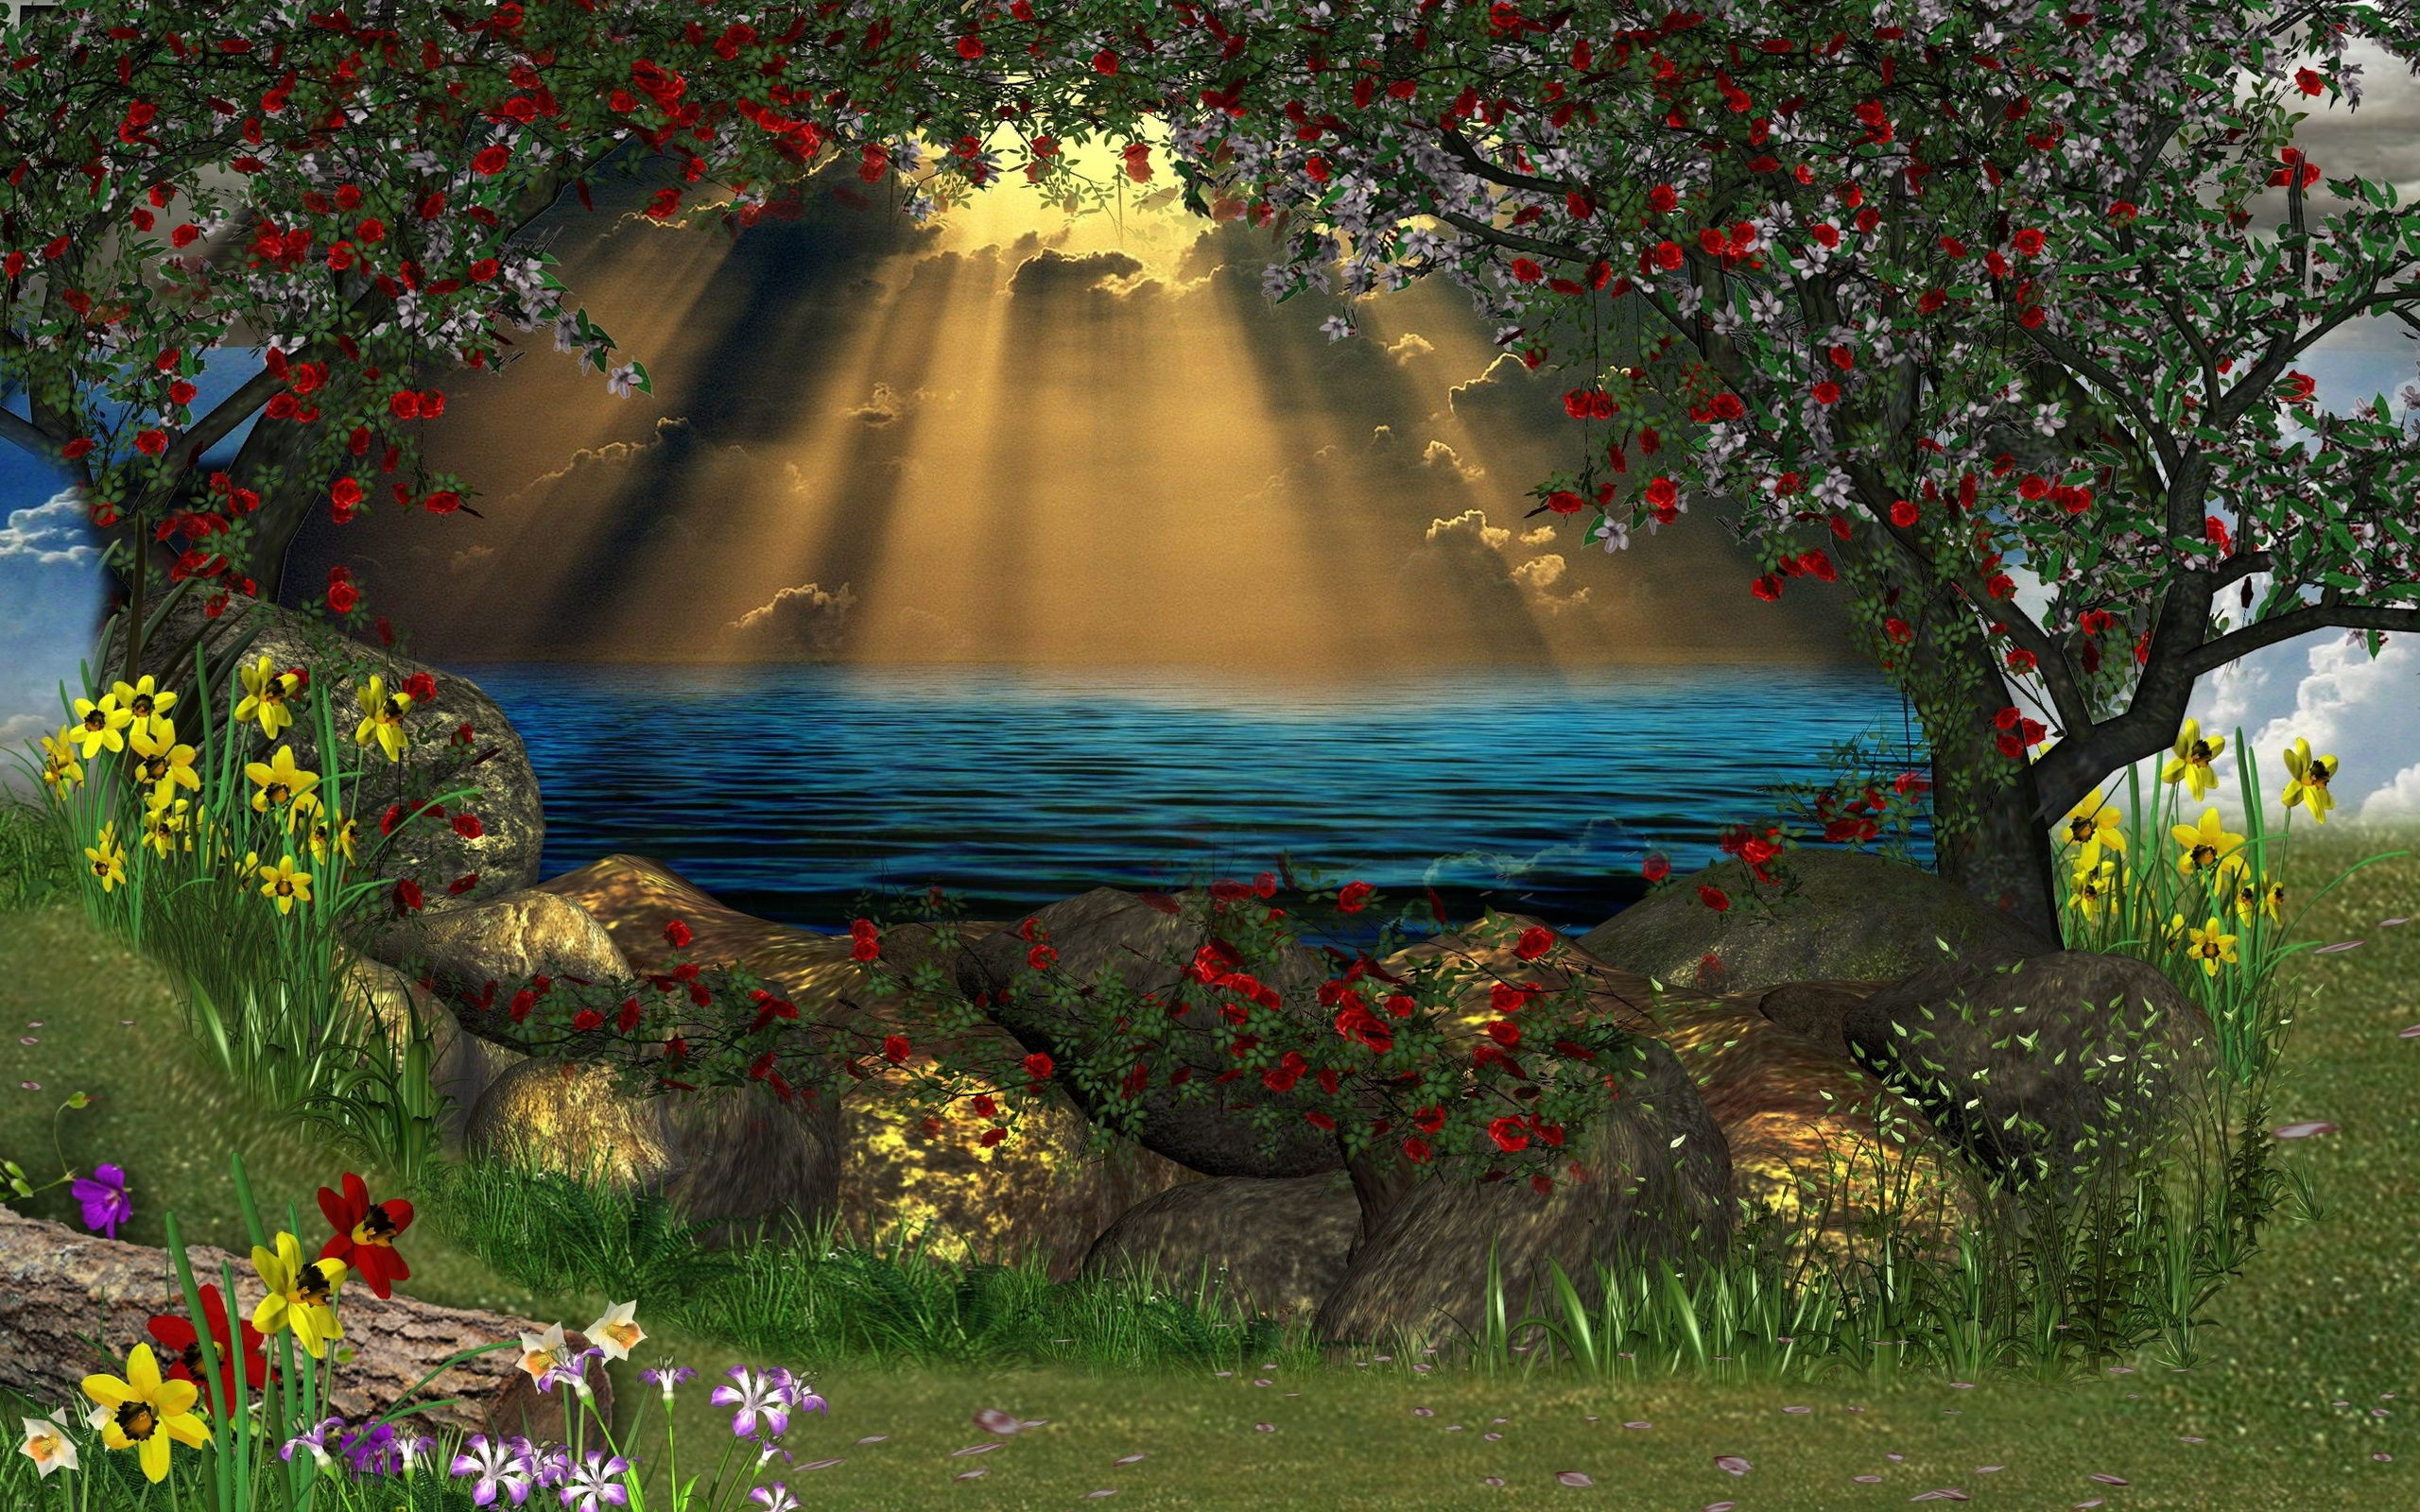 2560x1600 Fantasy - Lake Flower Magical Fantasy Daffodil Sunbeam Wallpaper